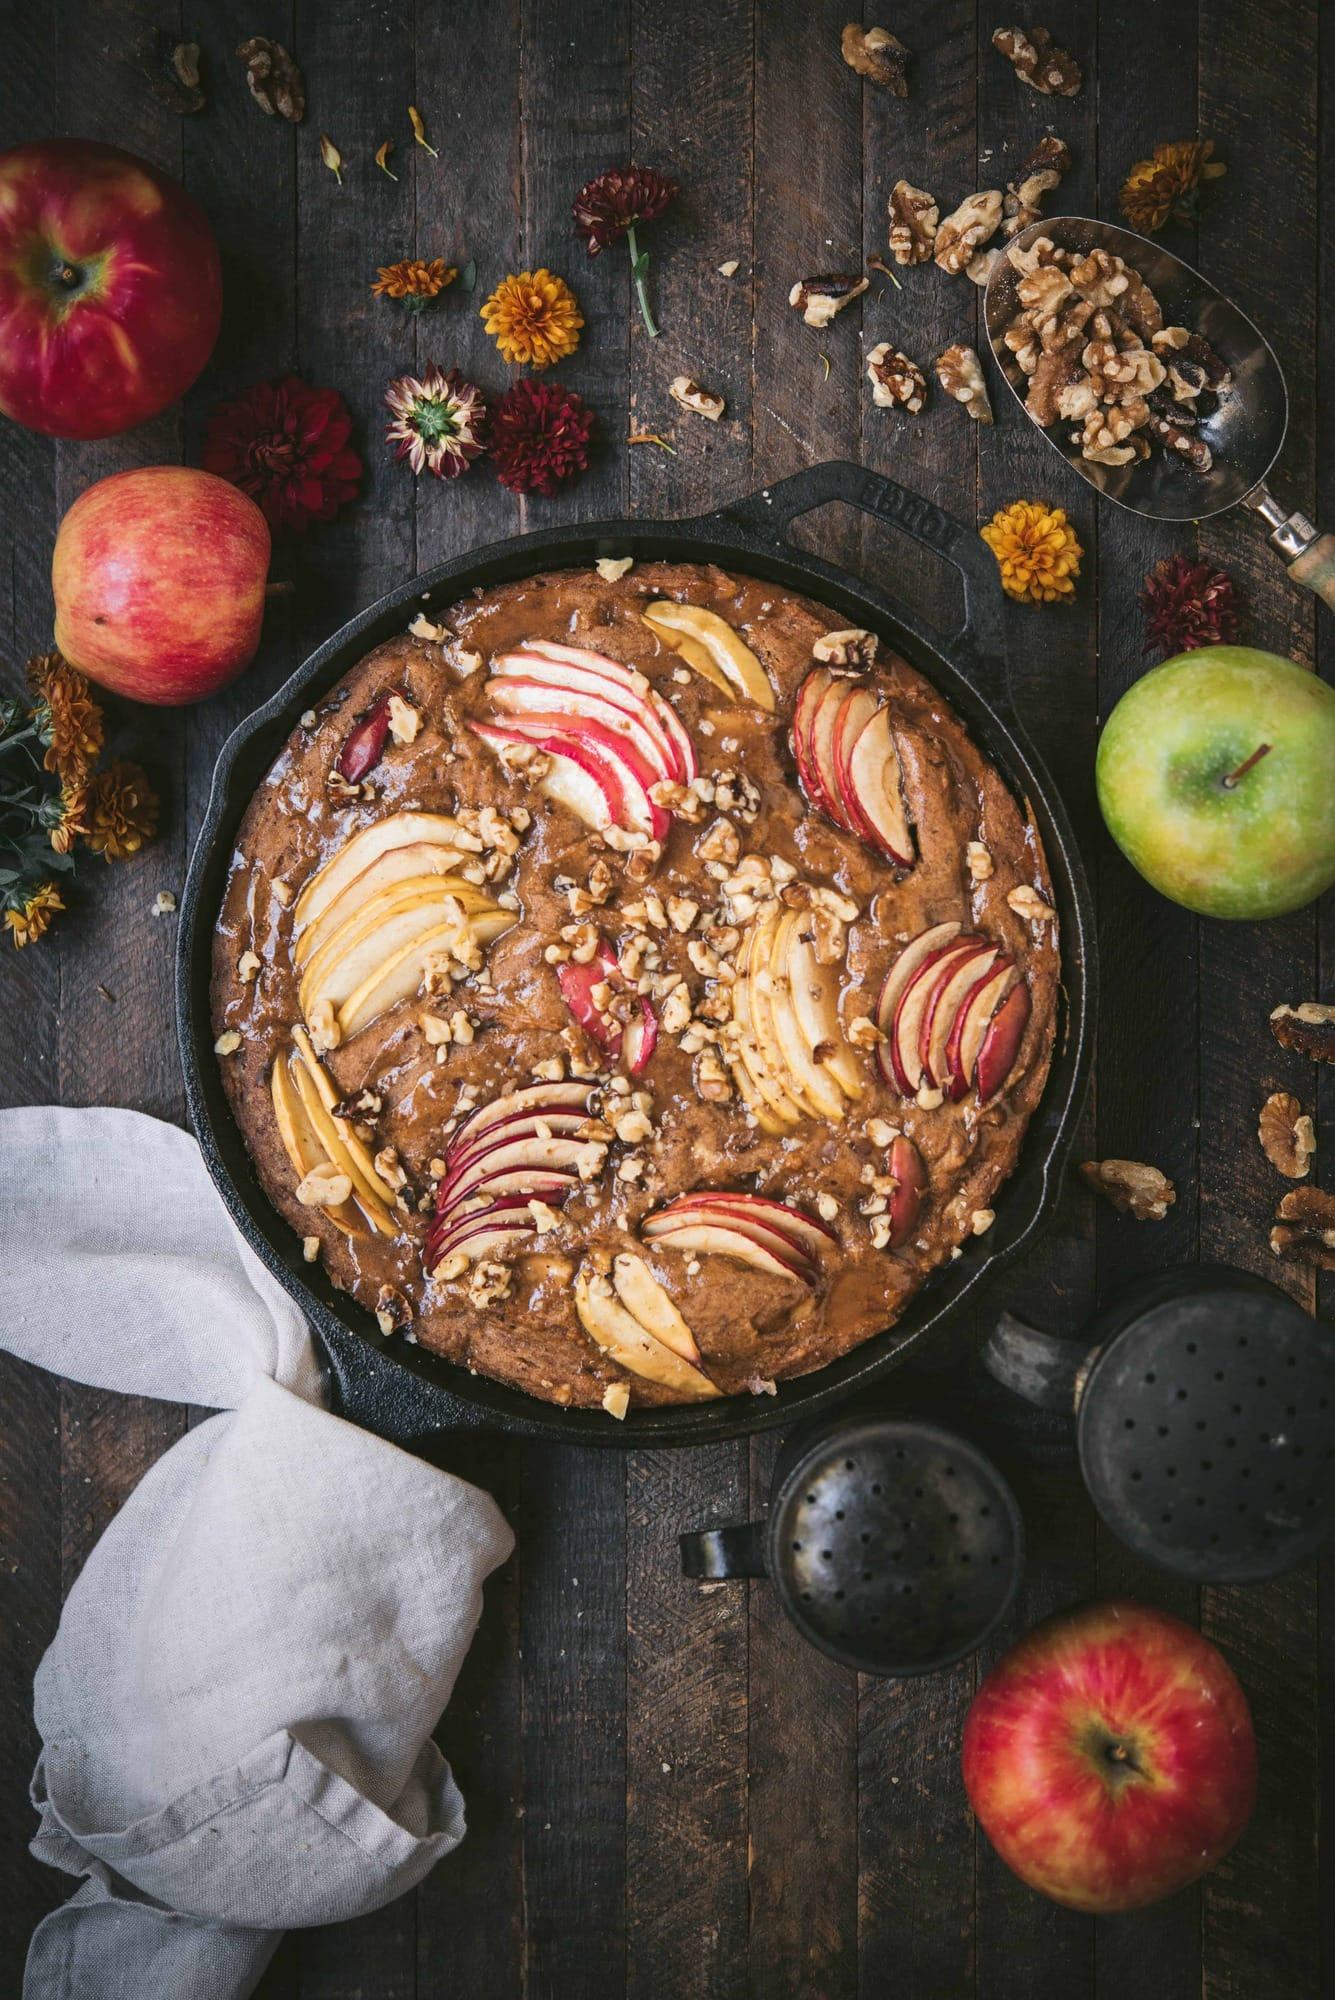 Overhead of an apple walnut cake in a cast iron skillet surrounded by fall flowers and apples